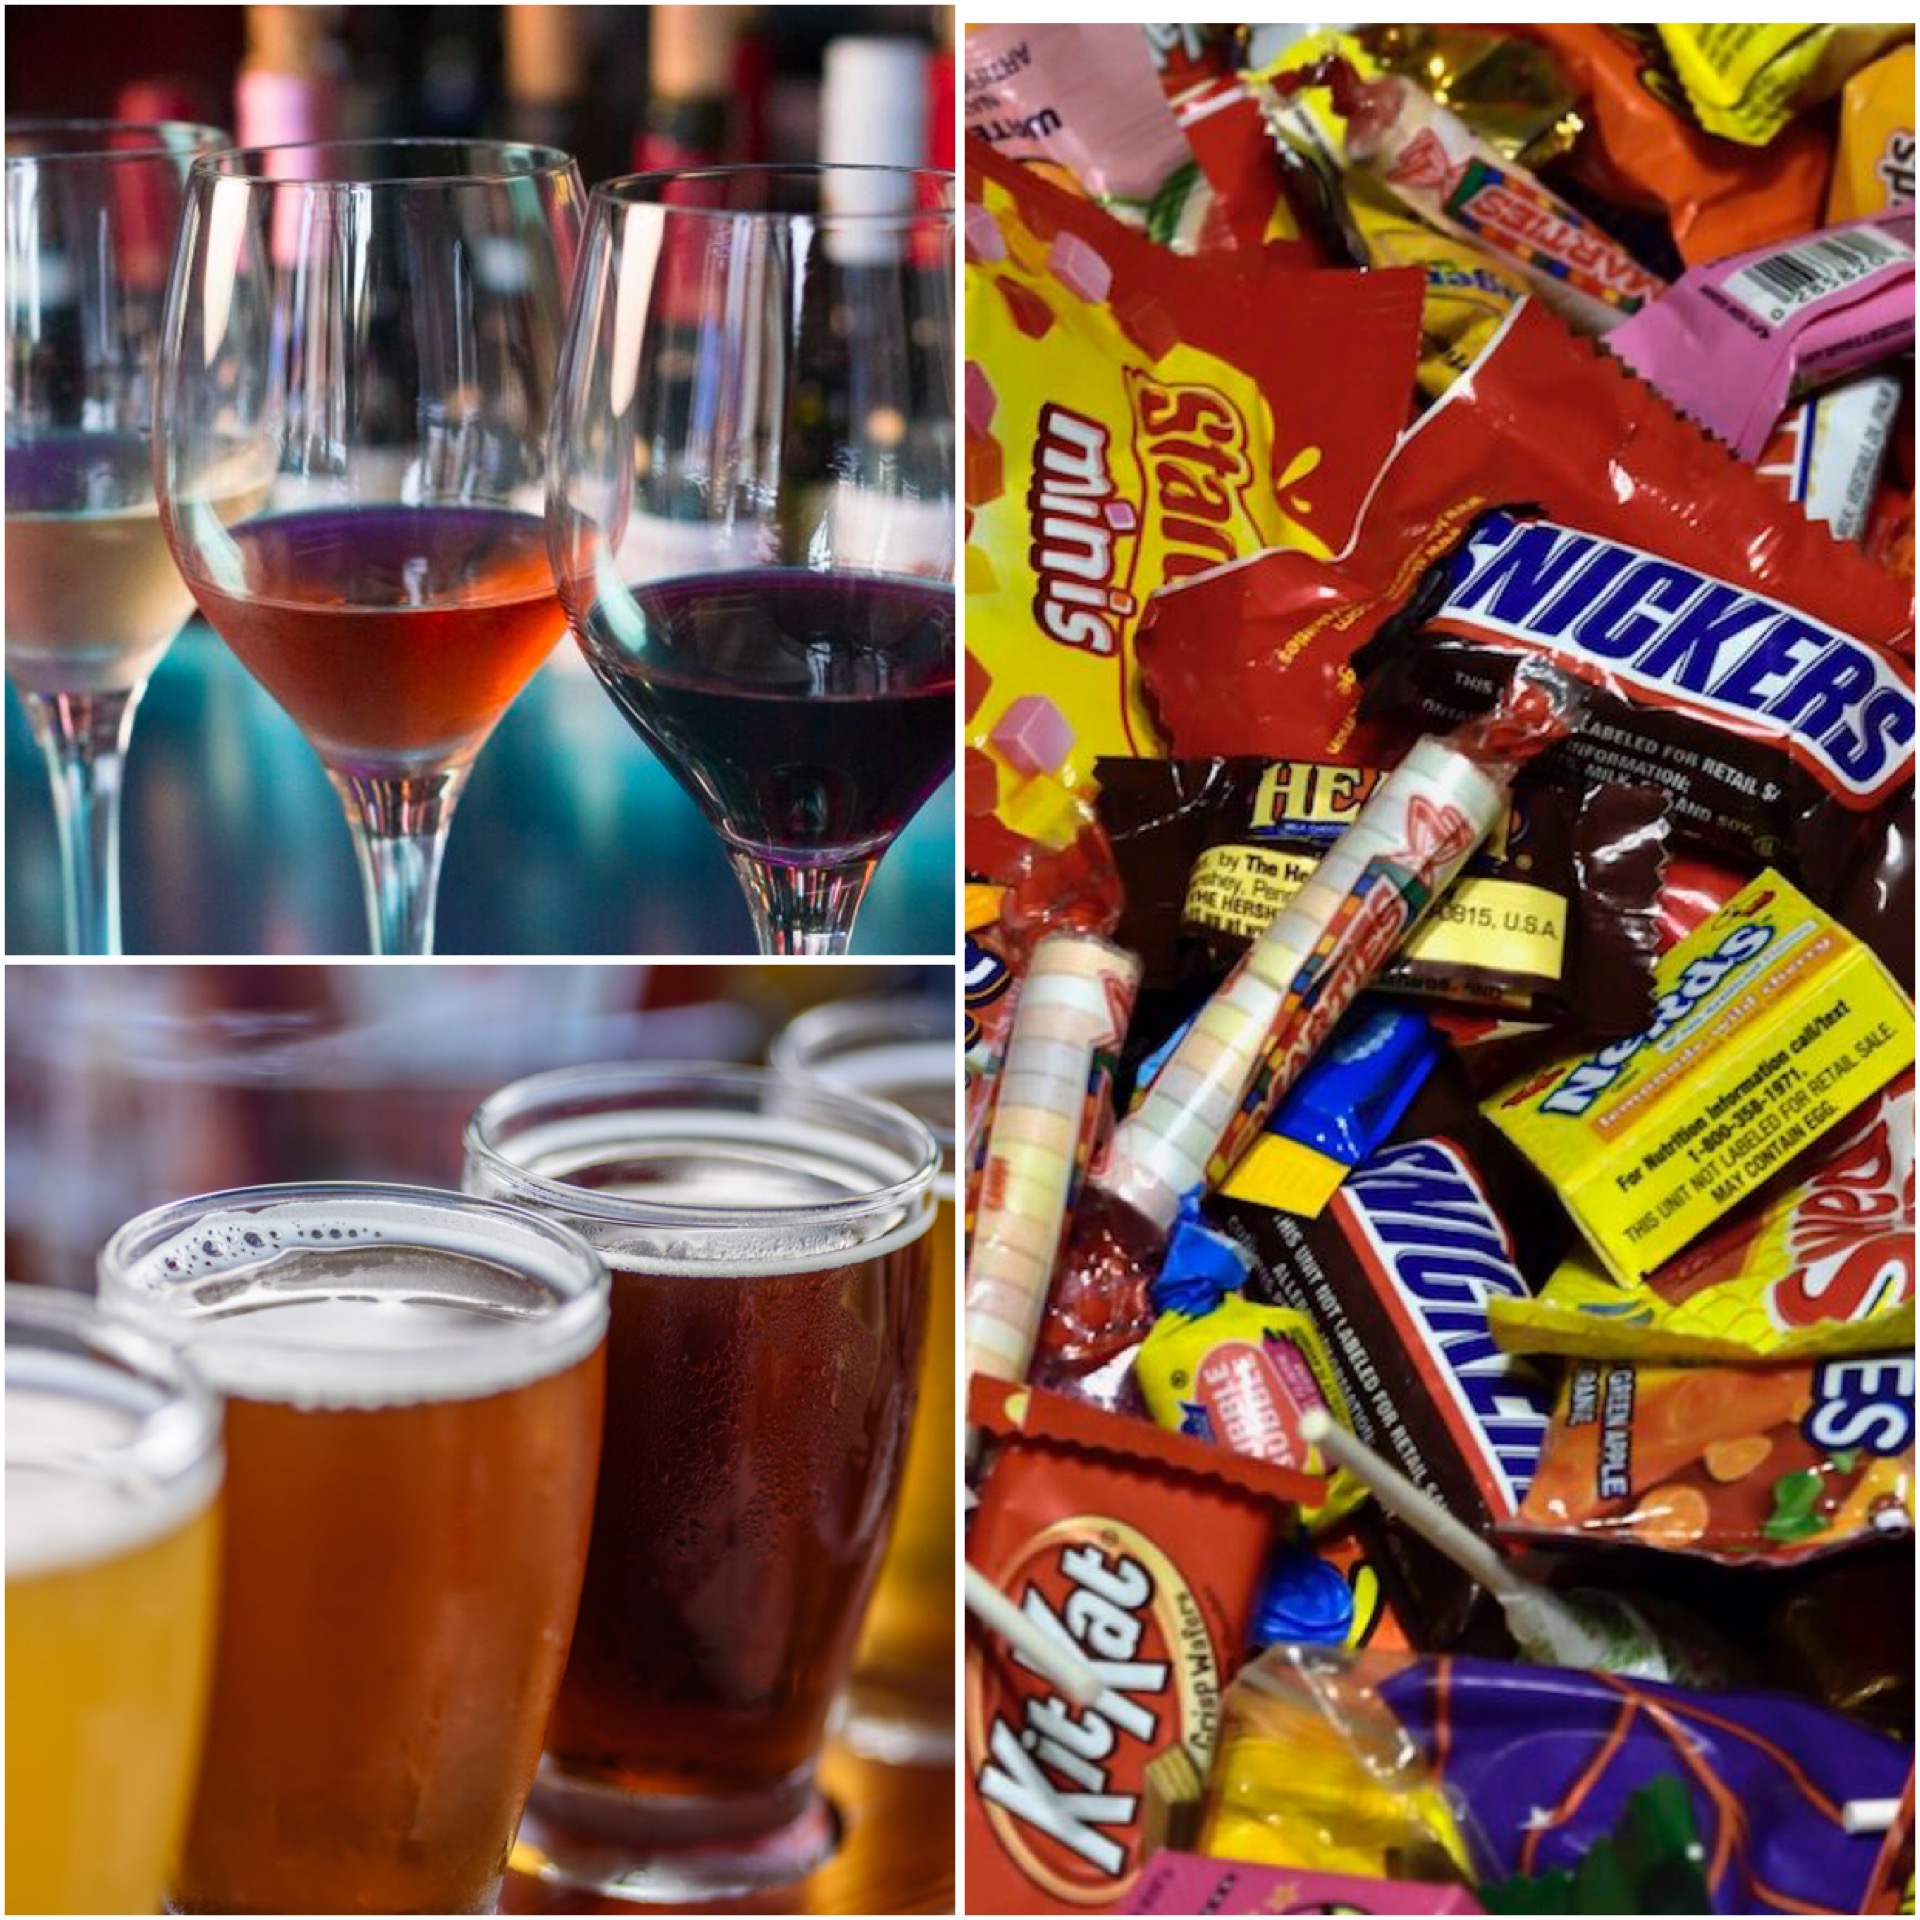 The Best Wine & Beer To Pair With Halloween Candy